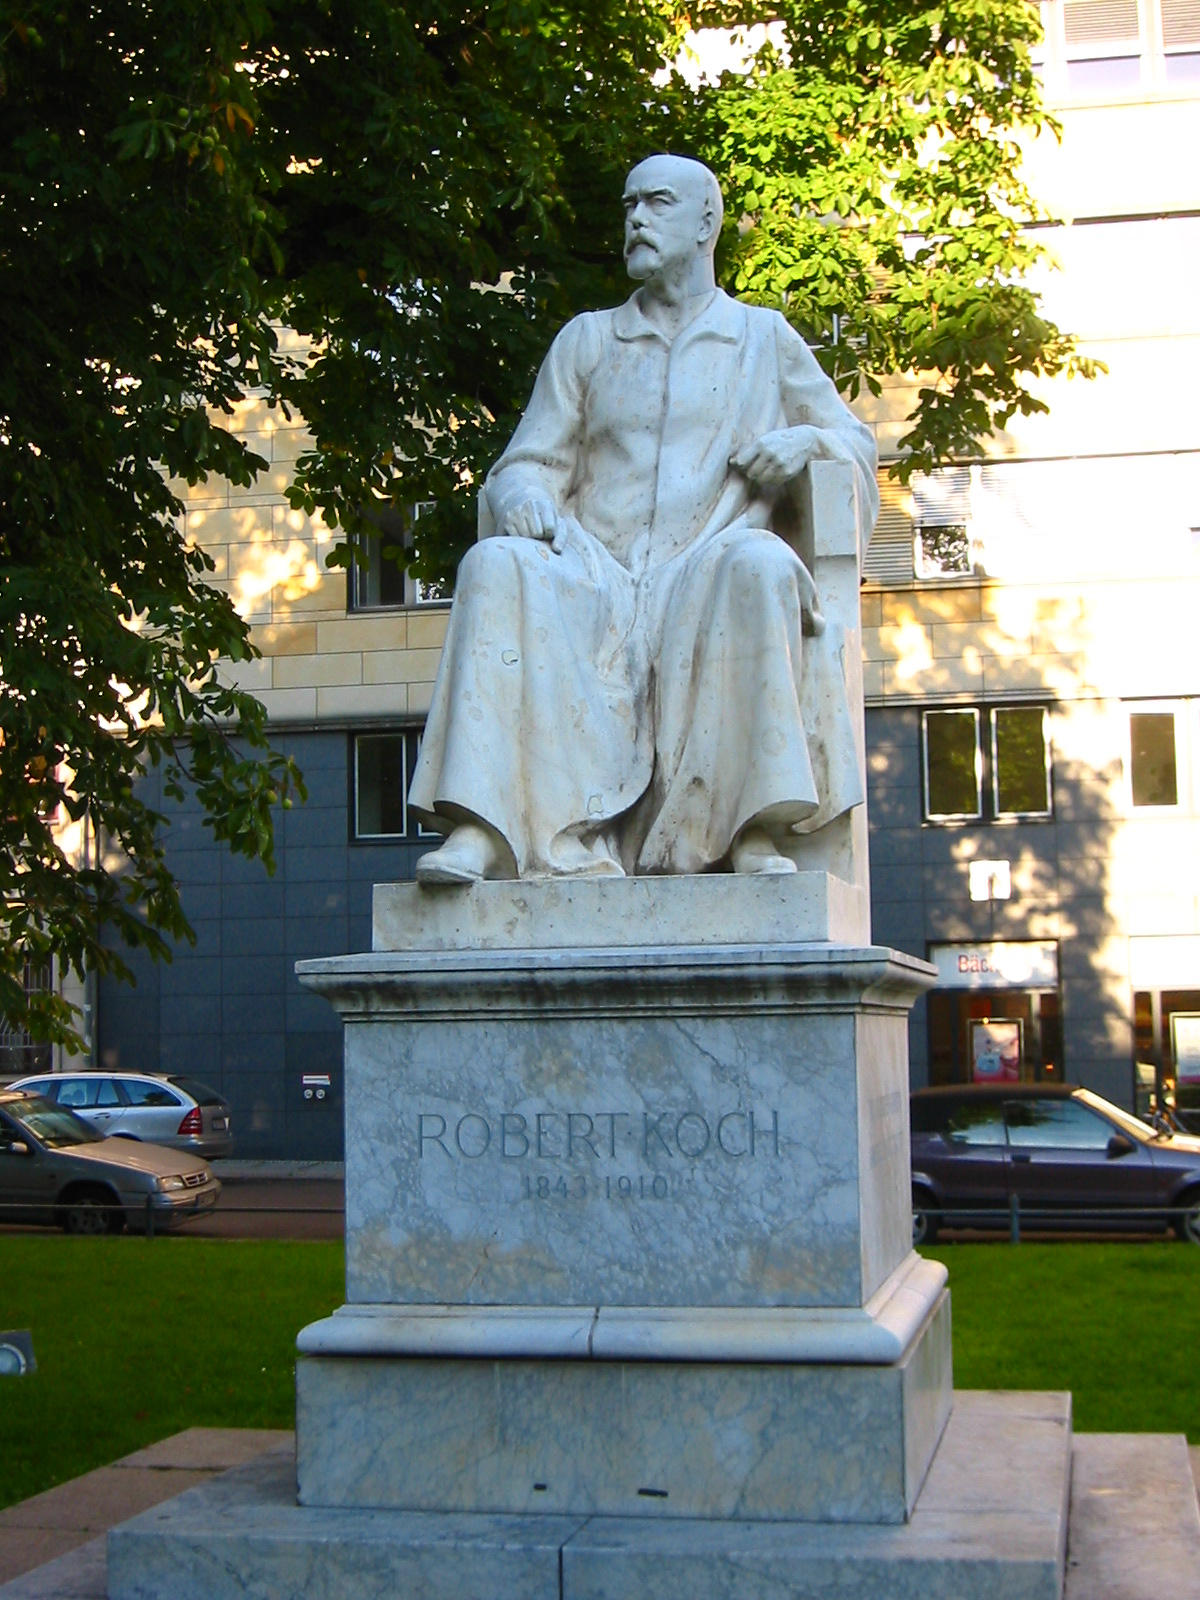 http://upload.wikimedia.org/wikipedia/commons/4/4b/Robert_Koch_-_Statue_in_Berlin.jpg